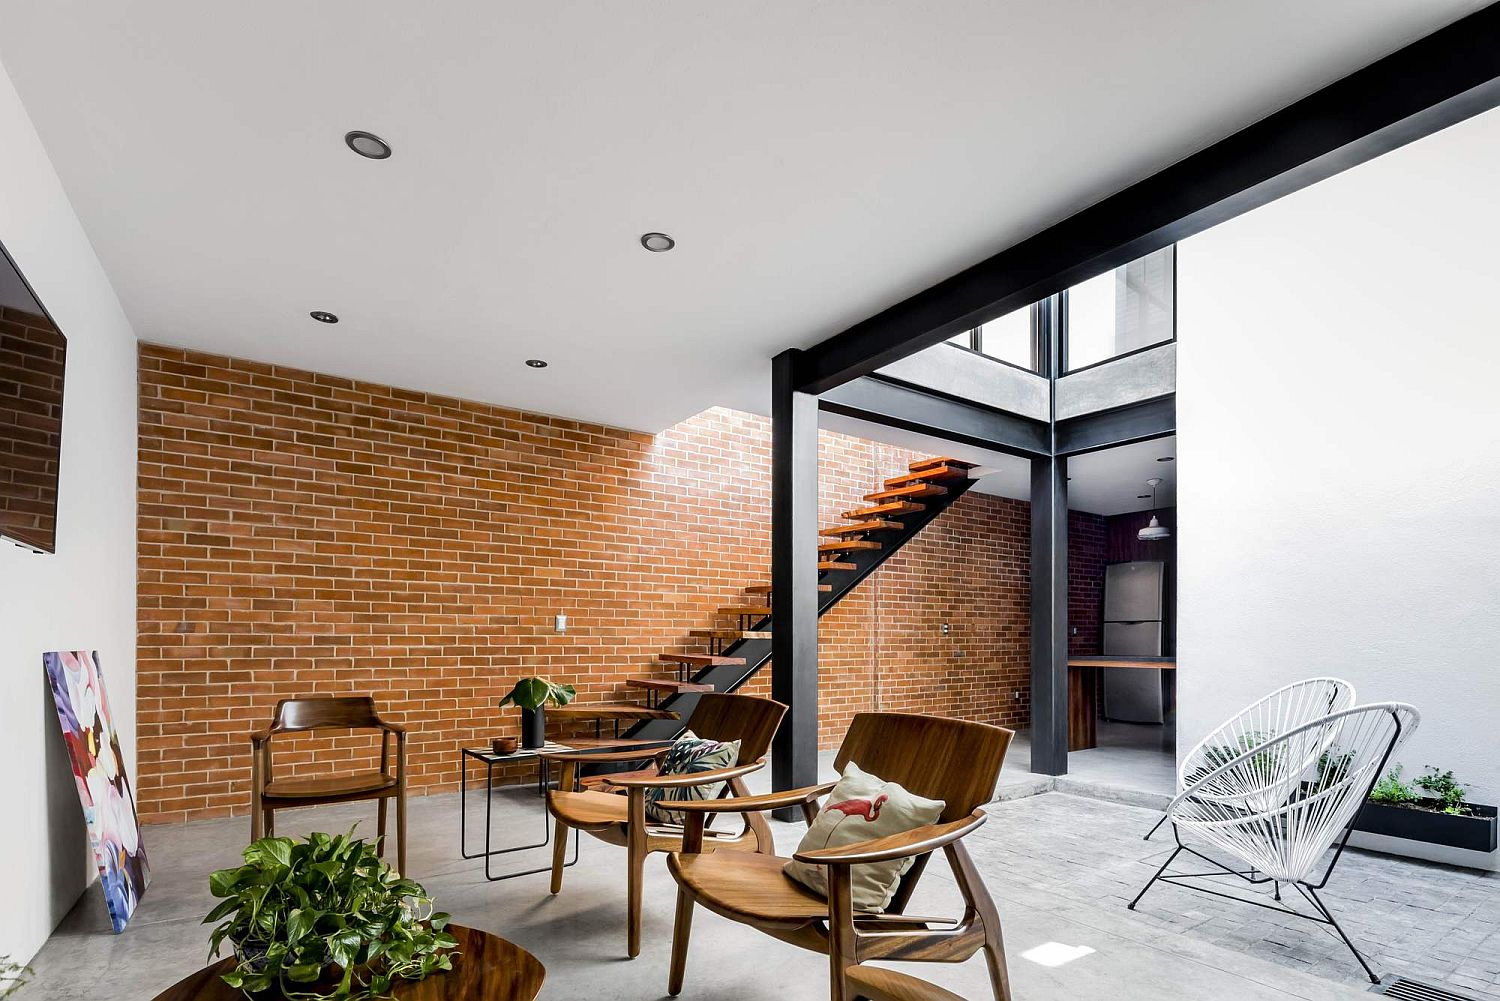 Brick Wall Design Exposed Brick Walls Steal The Show In This Modern Industrial Home